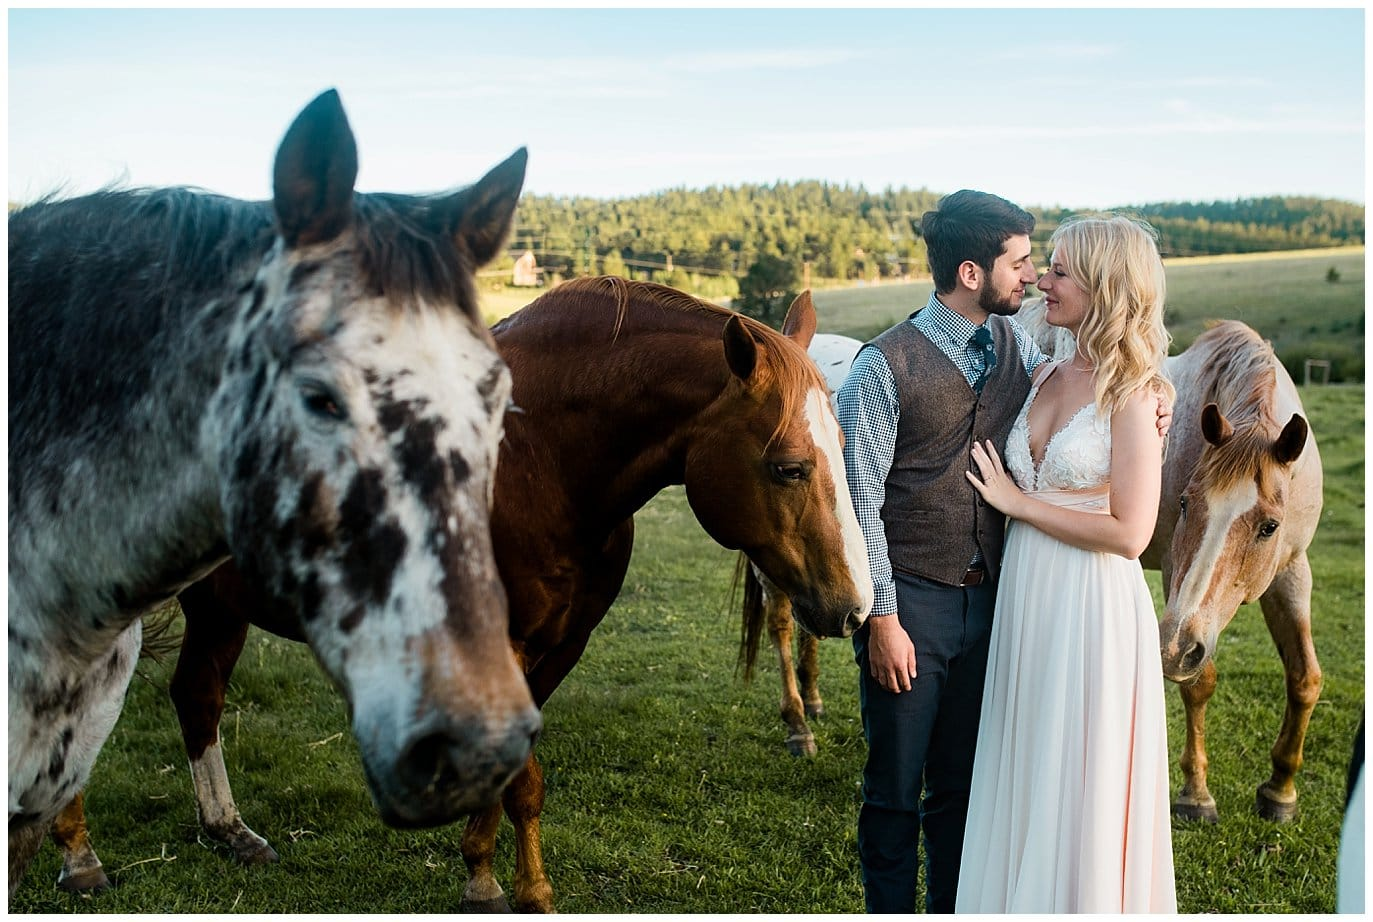 Bride and Groom with horses at Deer Creek Valley Ranch wedding by Denver Wedding Photographer Jennie Crate Photographer